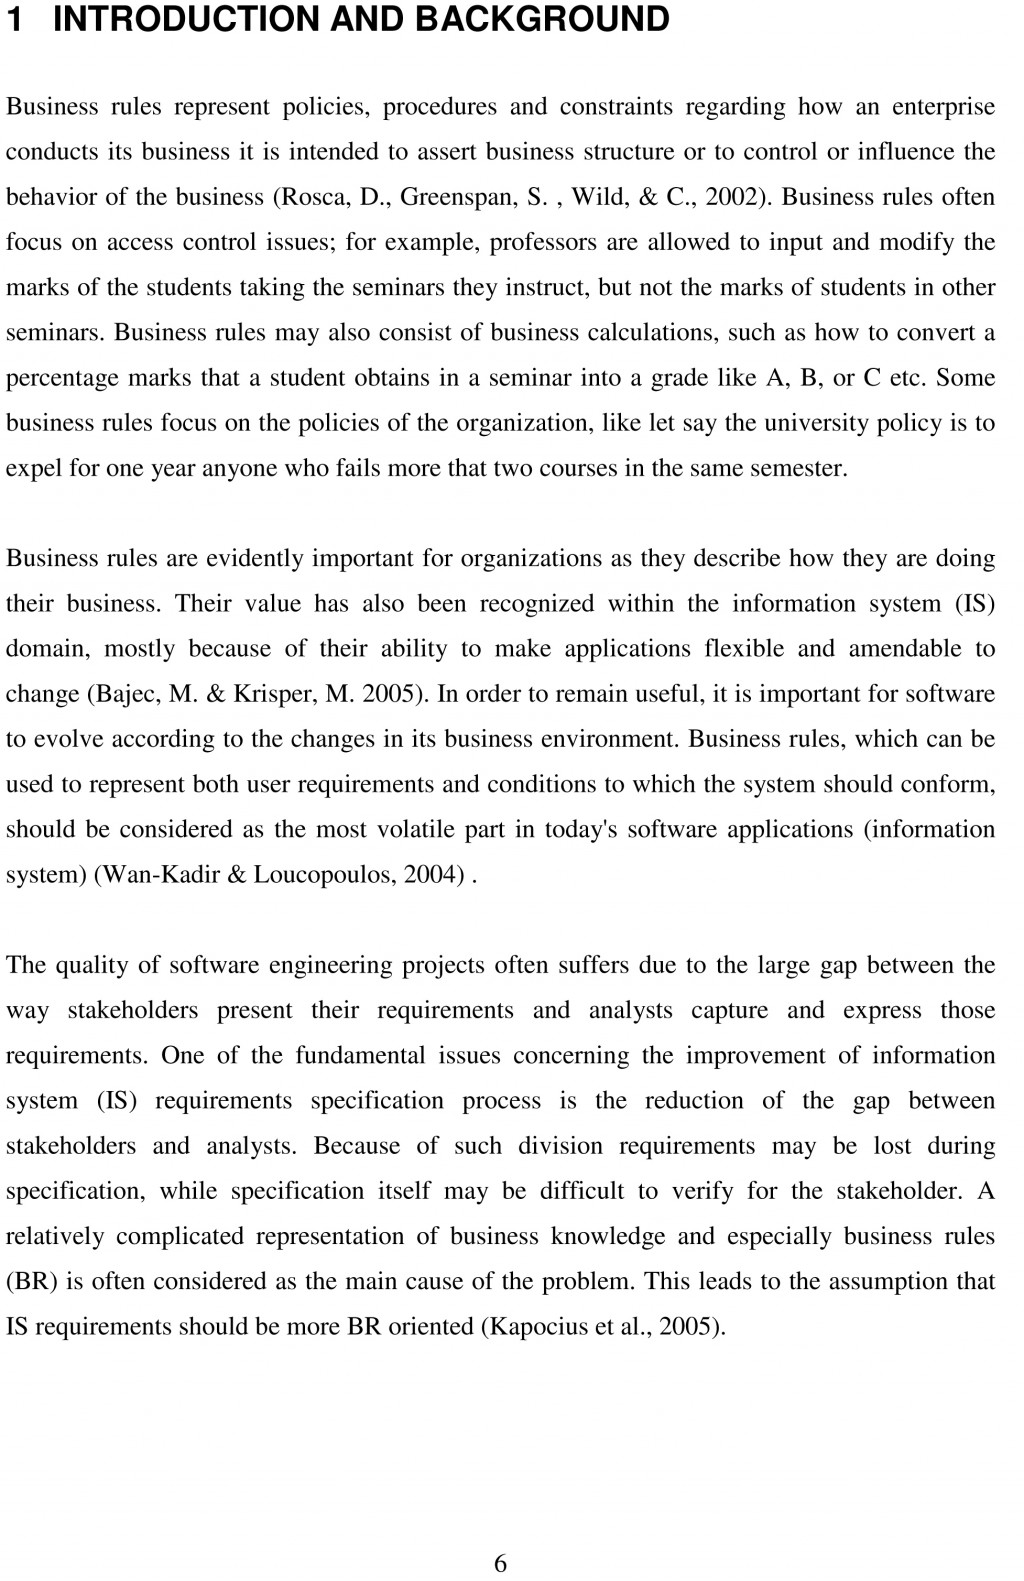 017 Thesis Free Sample1 Write My Essay For Shocking Me Uk Online Large